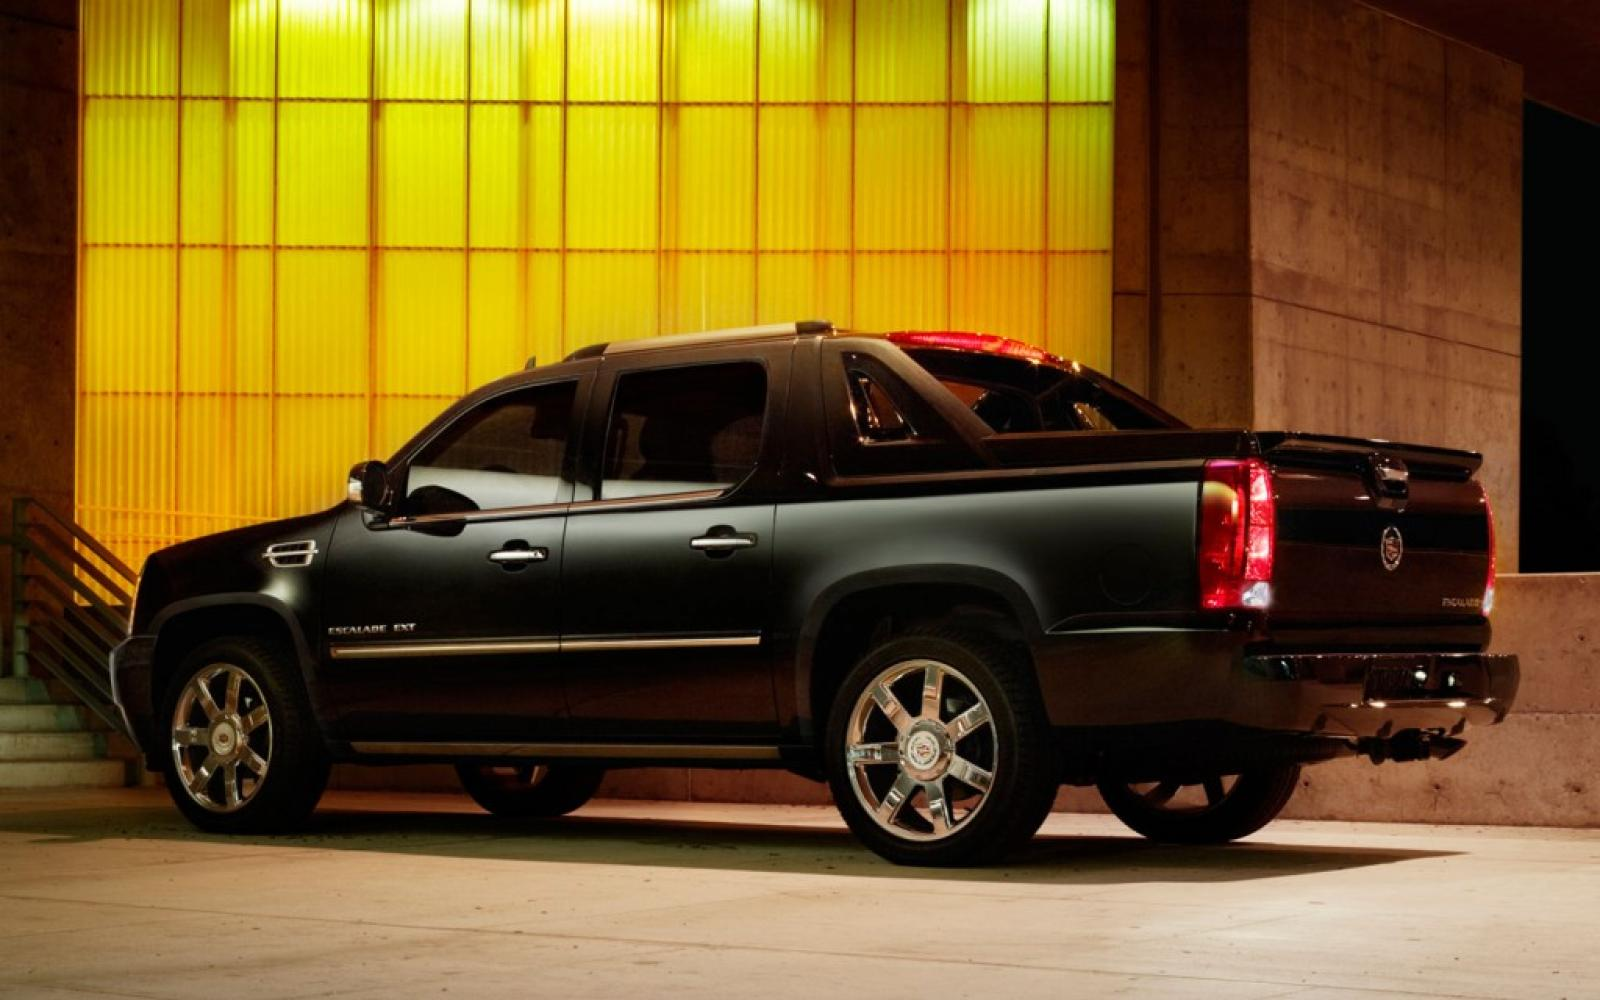 2013 cadillac escalade ext information and photos zombiedrive. Black Bedroom Furniture Sets. Home Design Ideas